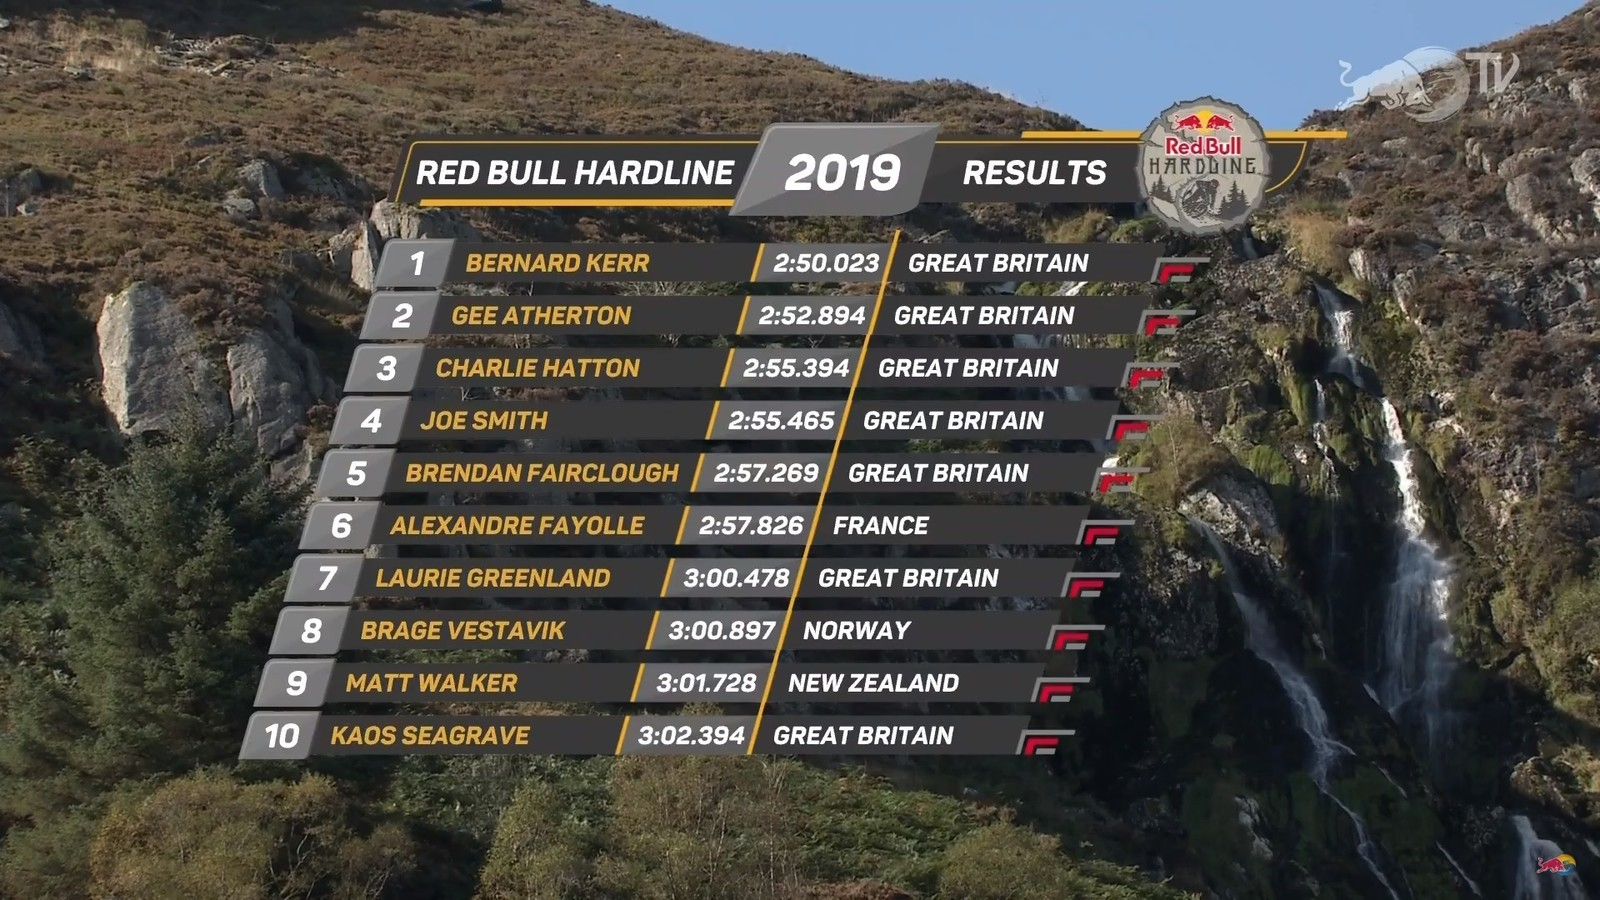 Bernard Kerr and Gee Atherton Top Hardline Qualifying Session, 14 Riders Advance to Finals